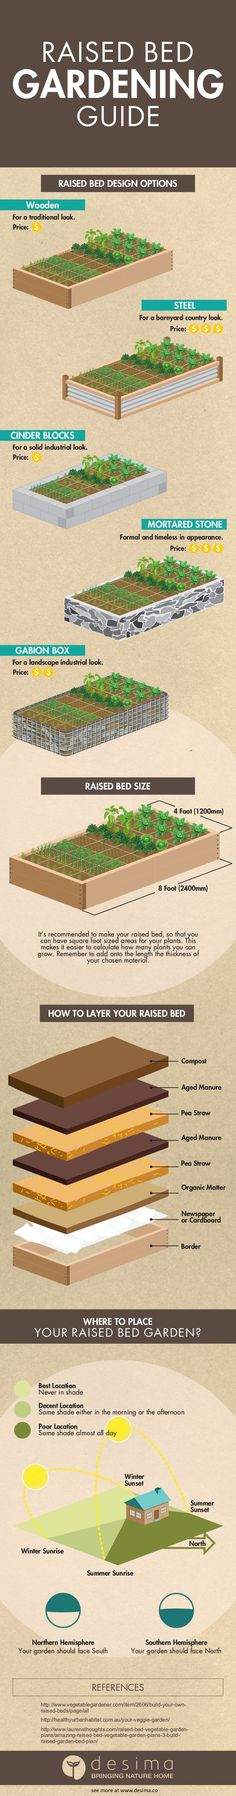 Use this guide to help you build the perfect raised bed garden for your home. Raised bed gardening makes it easier to control weeds, pest control, planting and harvesting. It's important to choose the best materials for your budget. Raised beds also make it easier on your back. Using a quality soil mix as outlined below will help you increase yeilds and quality of your harvest. Raised Bed Gardening Guide Infographic Remember if you use this infographic on your website, you must have a ...